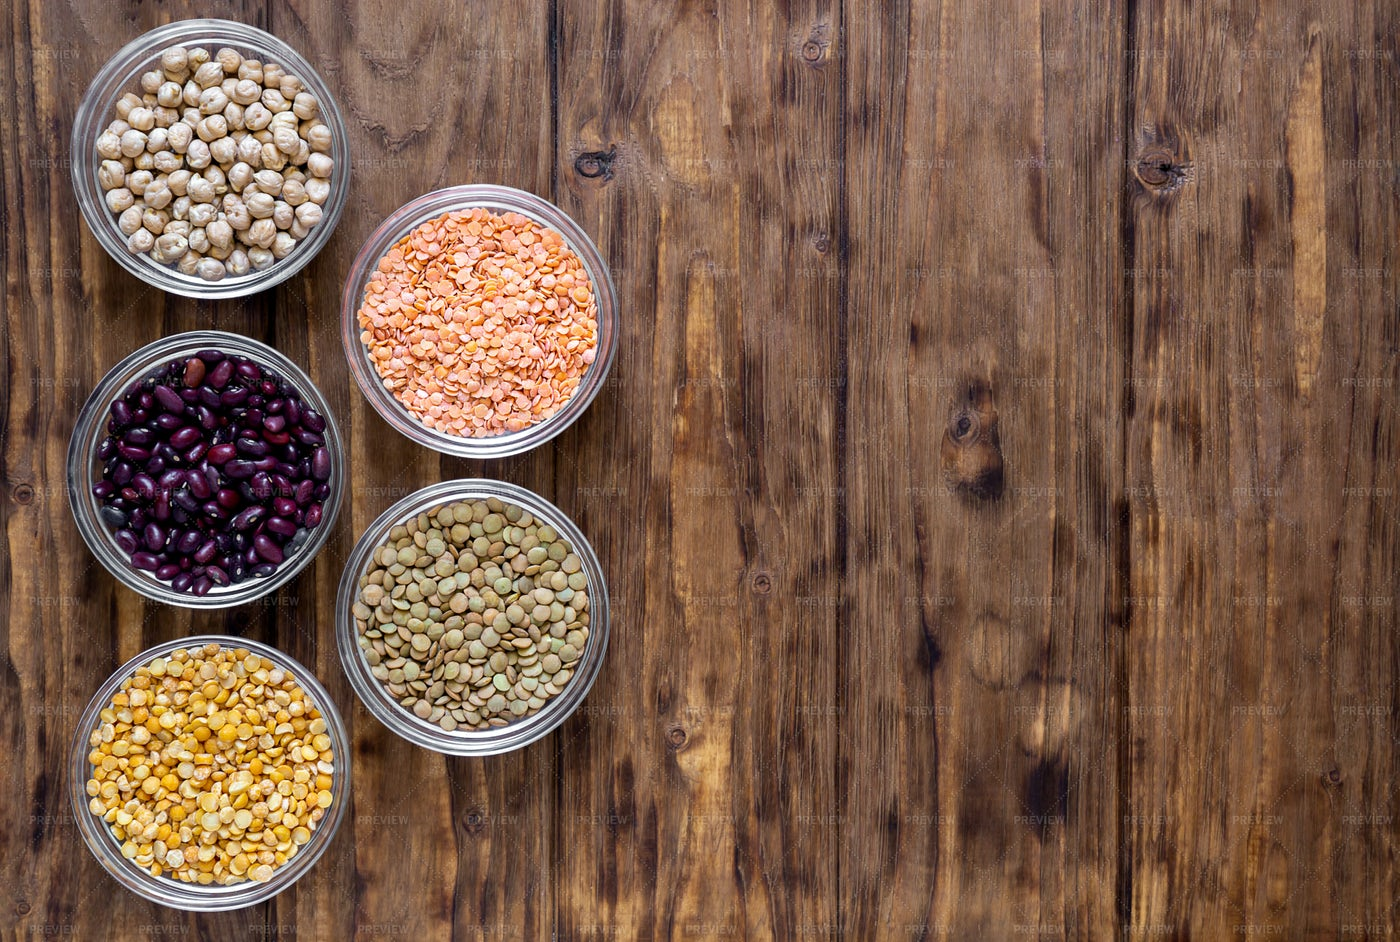 Various Beans In Bowls: Stock Photos